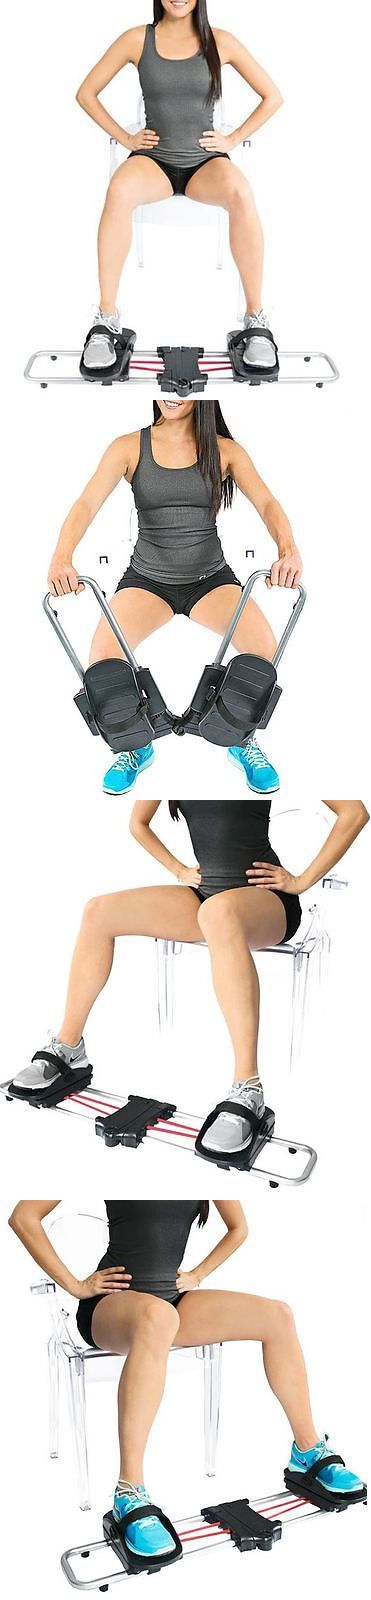 Thigh Exercisers 58106: Thigh Perfect Muscle Toning, Resistance And Sculpting Folding Machine BUY IT NOW ONLY: $82.9